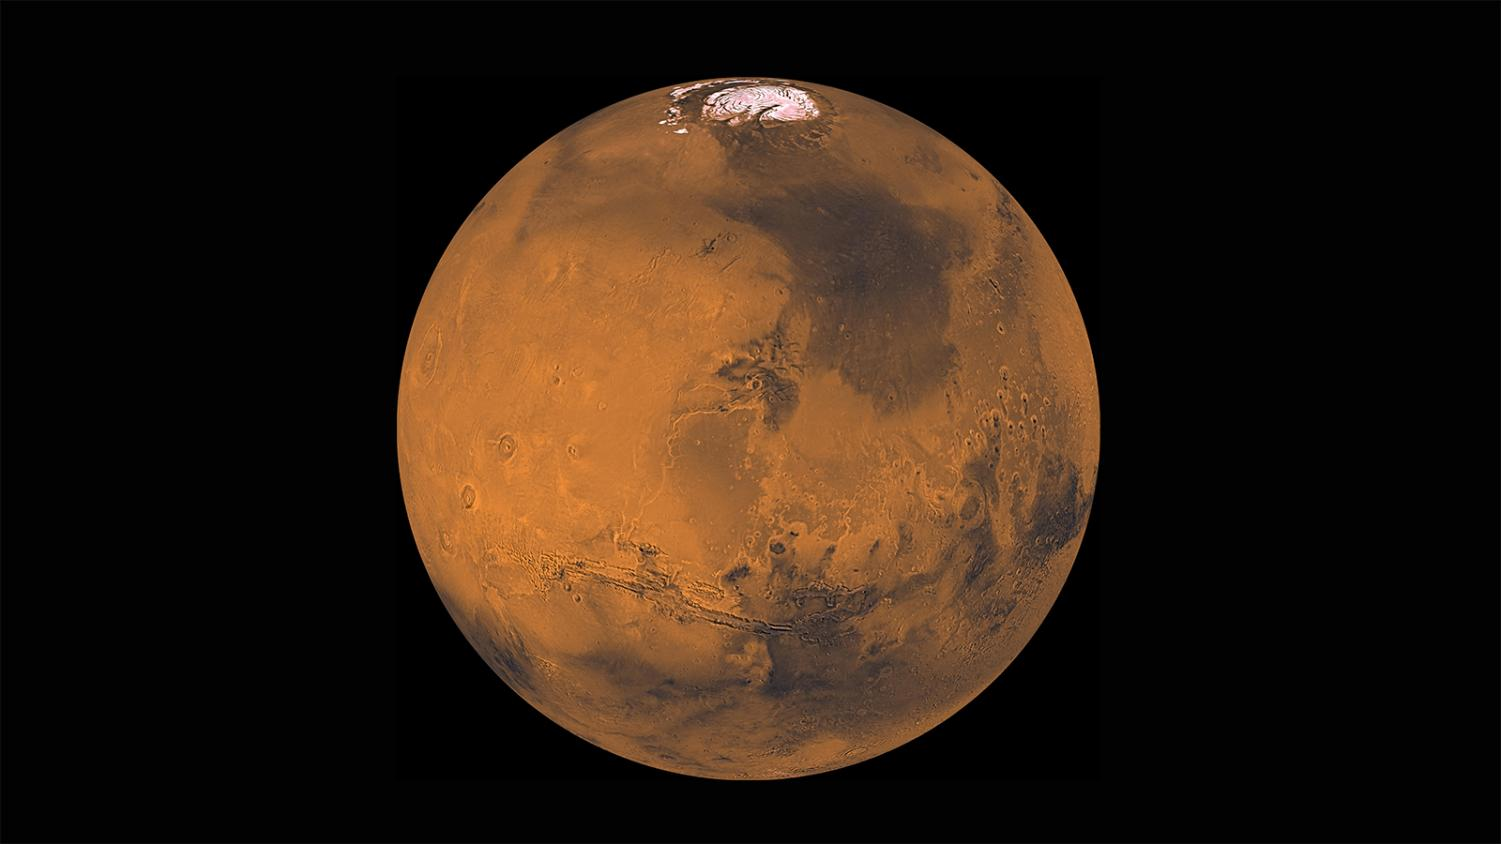 Mars is between 33.9 million and 250 million miles from Earth